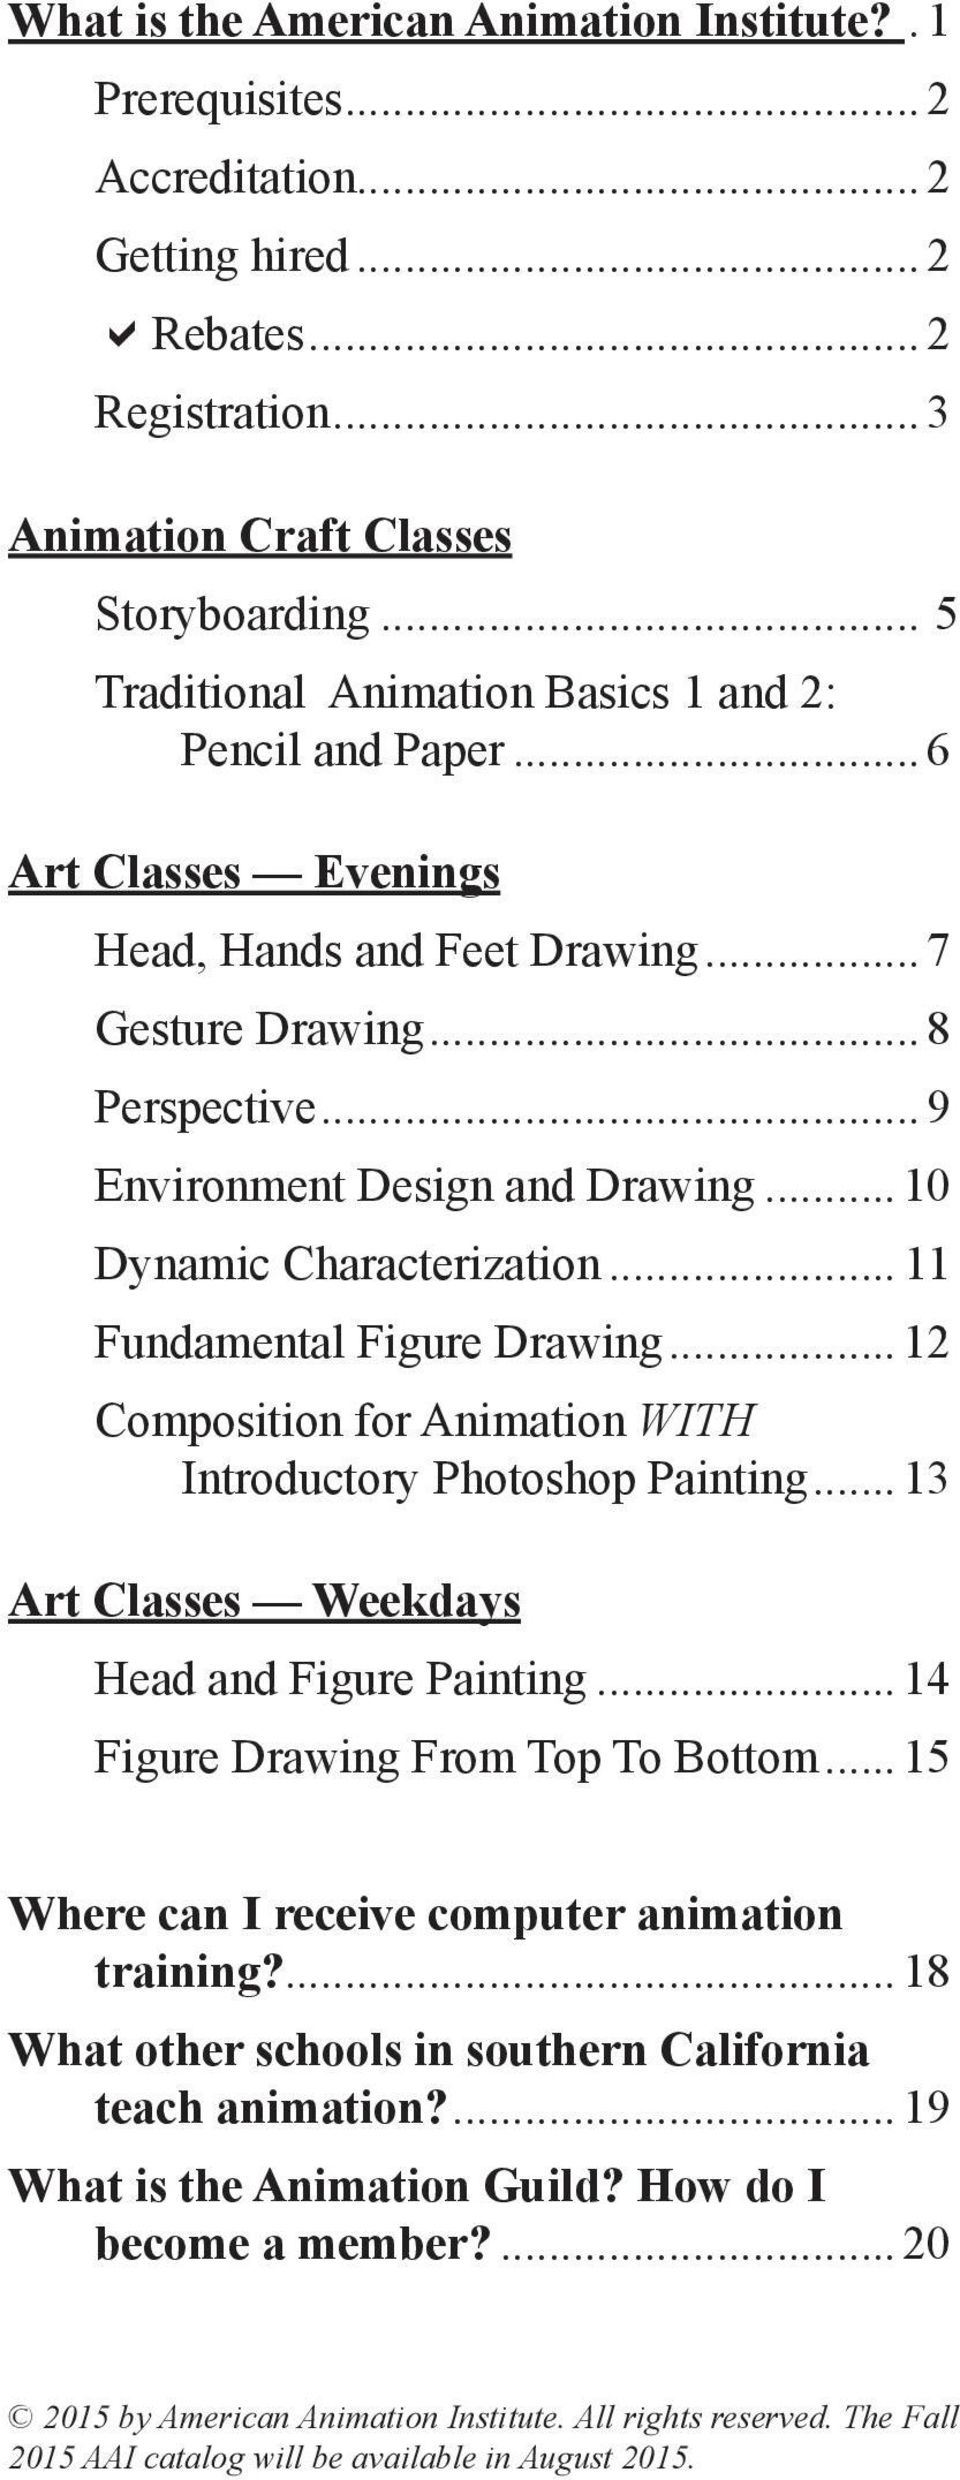 ..10 Dynamic Characterization... 11 Fundamental Figure Drawing...12 Composition for Animation WITH Introductory Photoshop Painting...13 Art Classes Weekdays Head and Figure Painting.